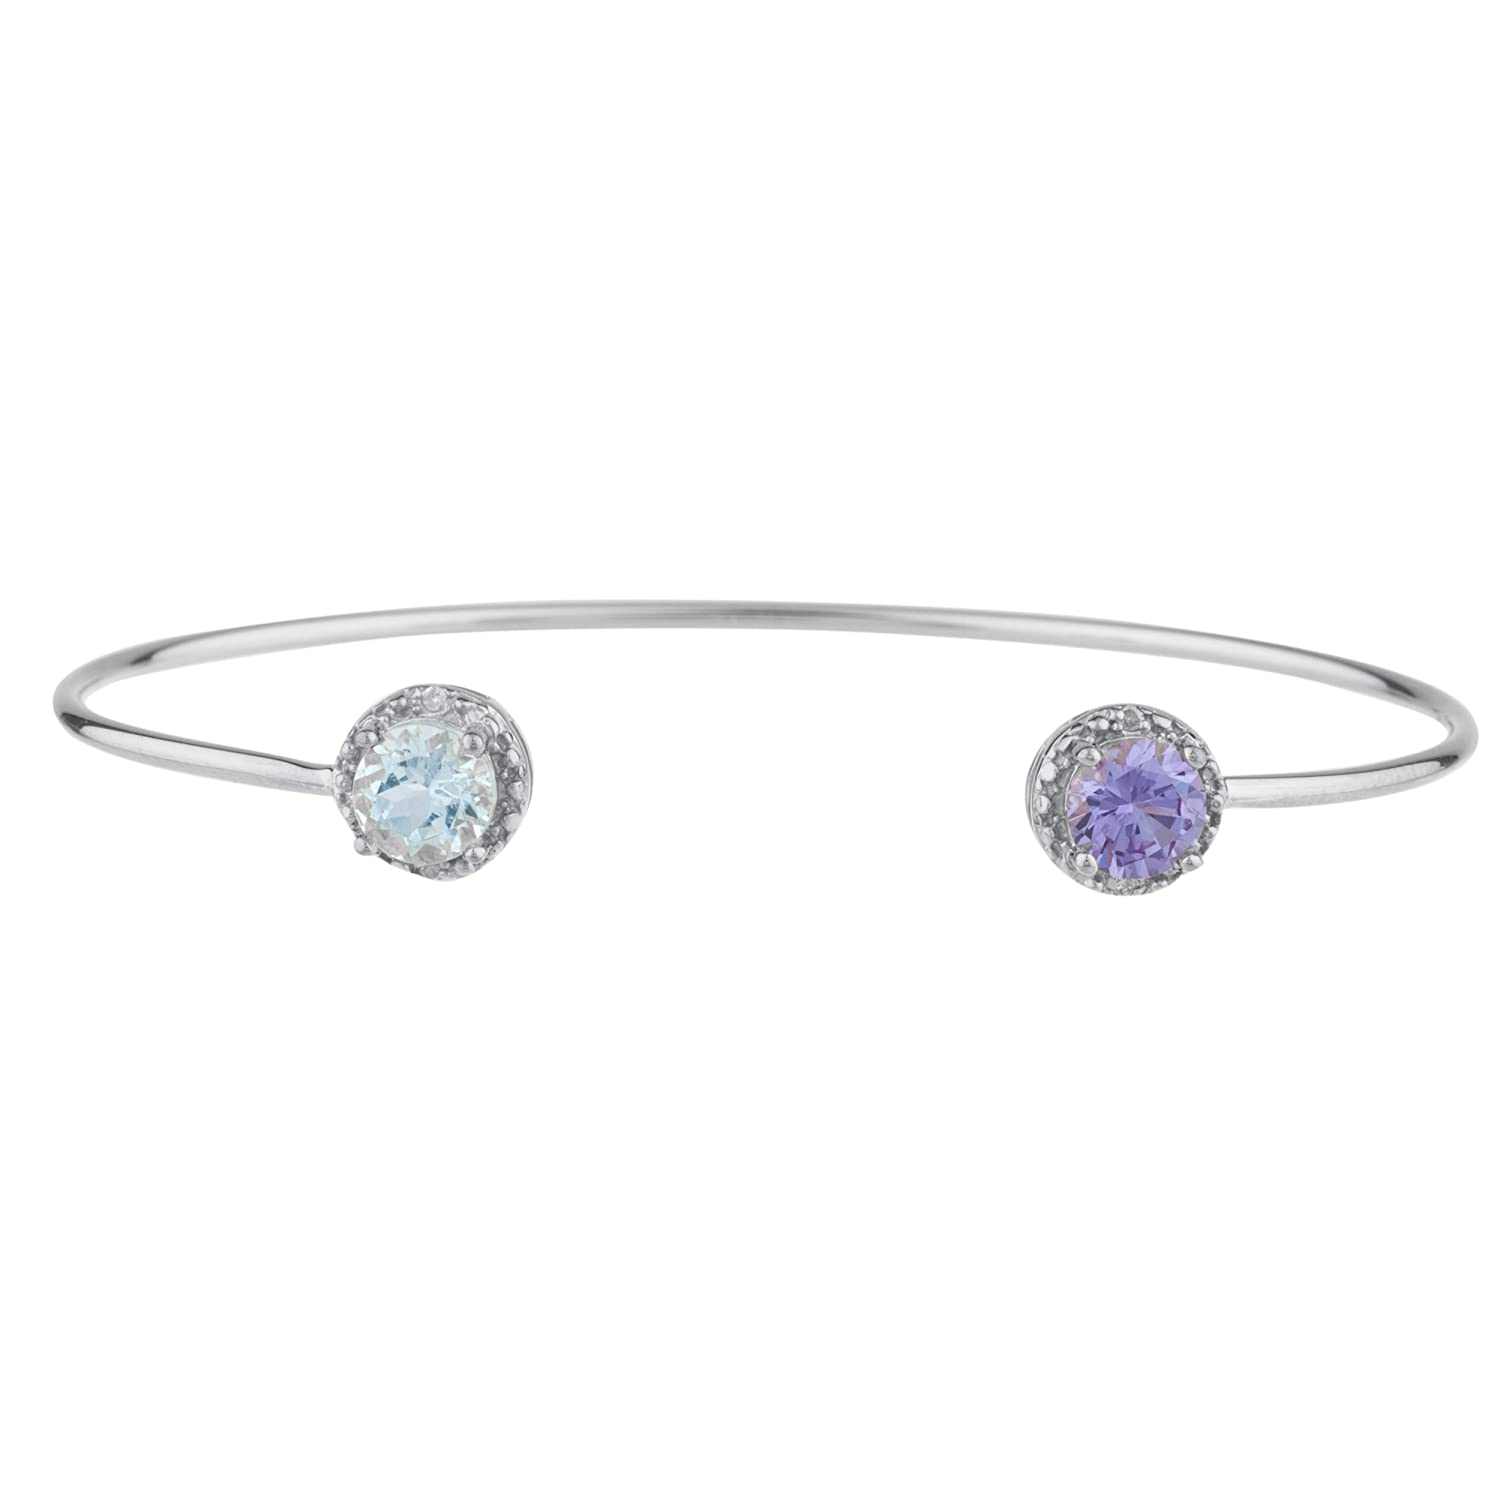 Genuine Aquamarine Sterling Silver Bracelet